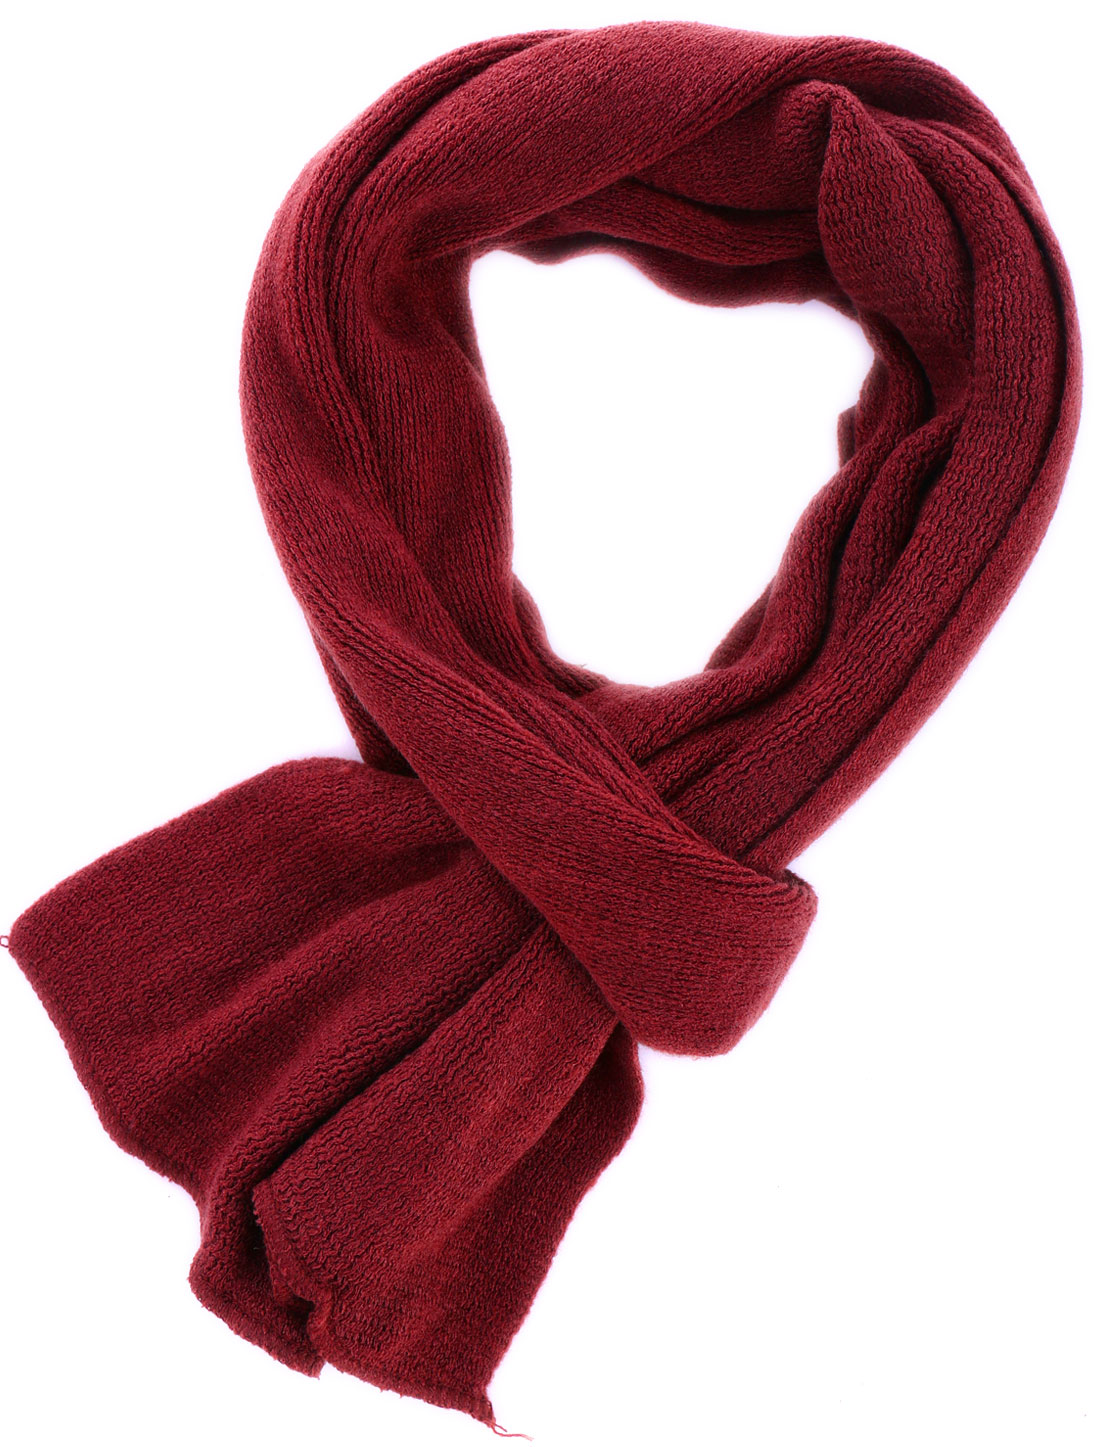 Men Solid Color Design Stretchy Burgundy Knit Scarf